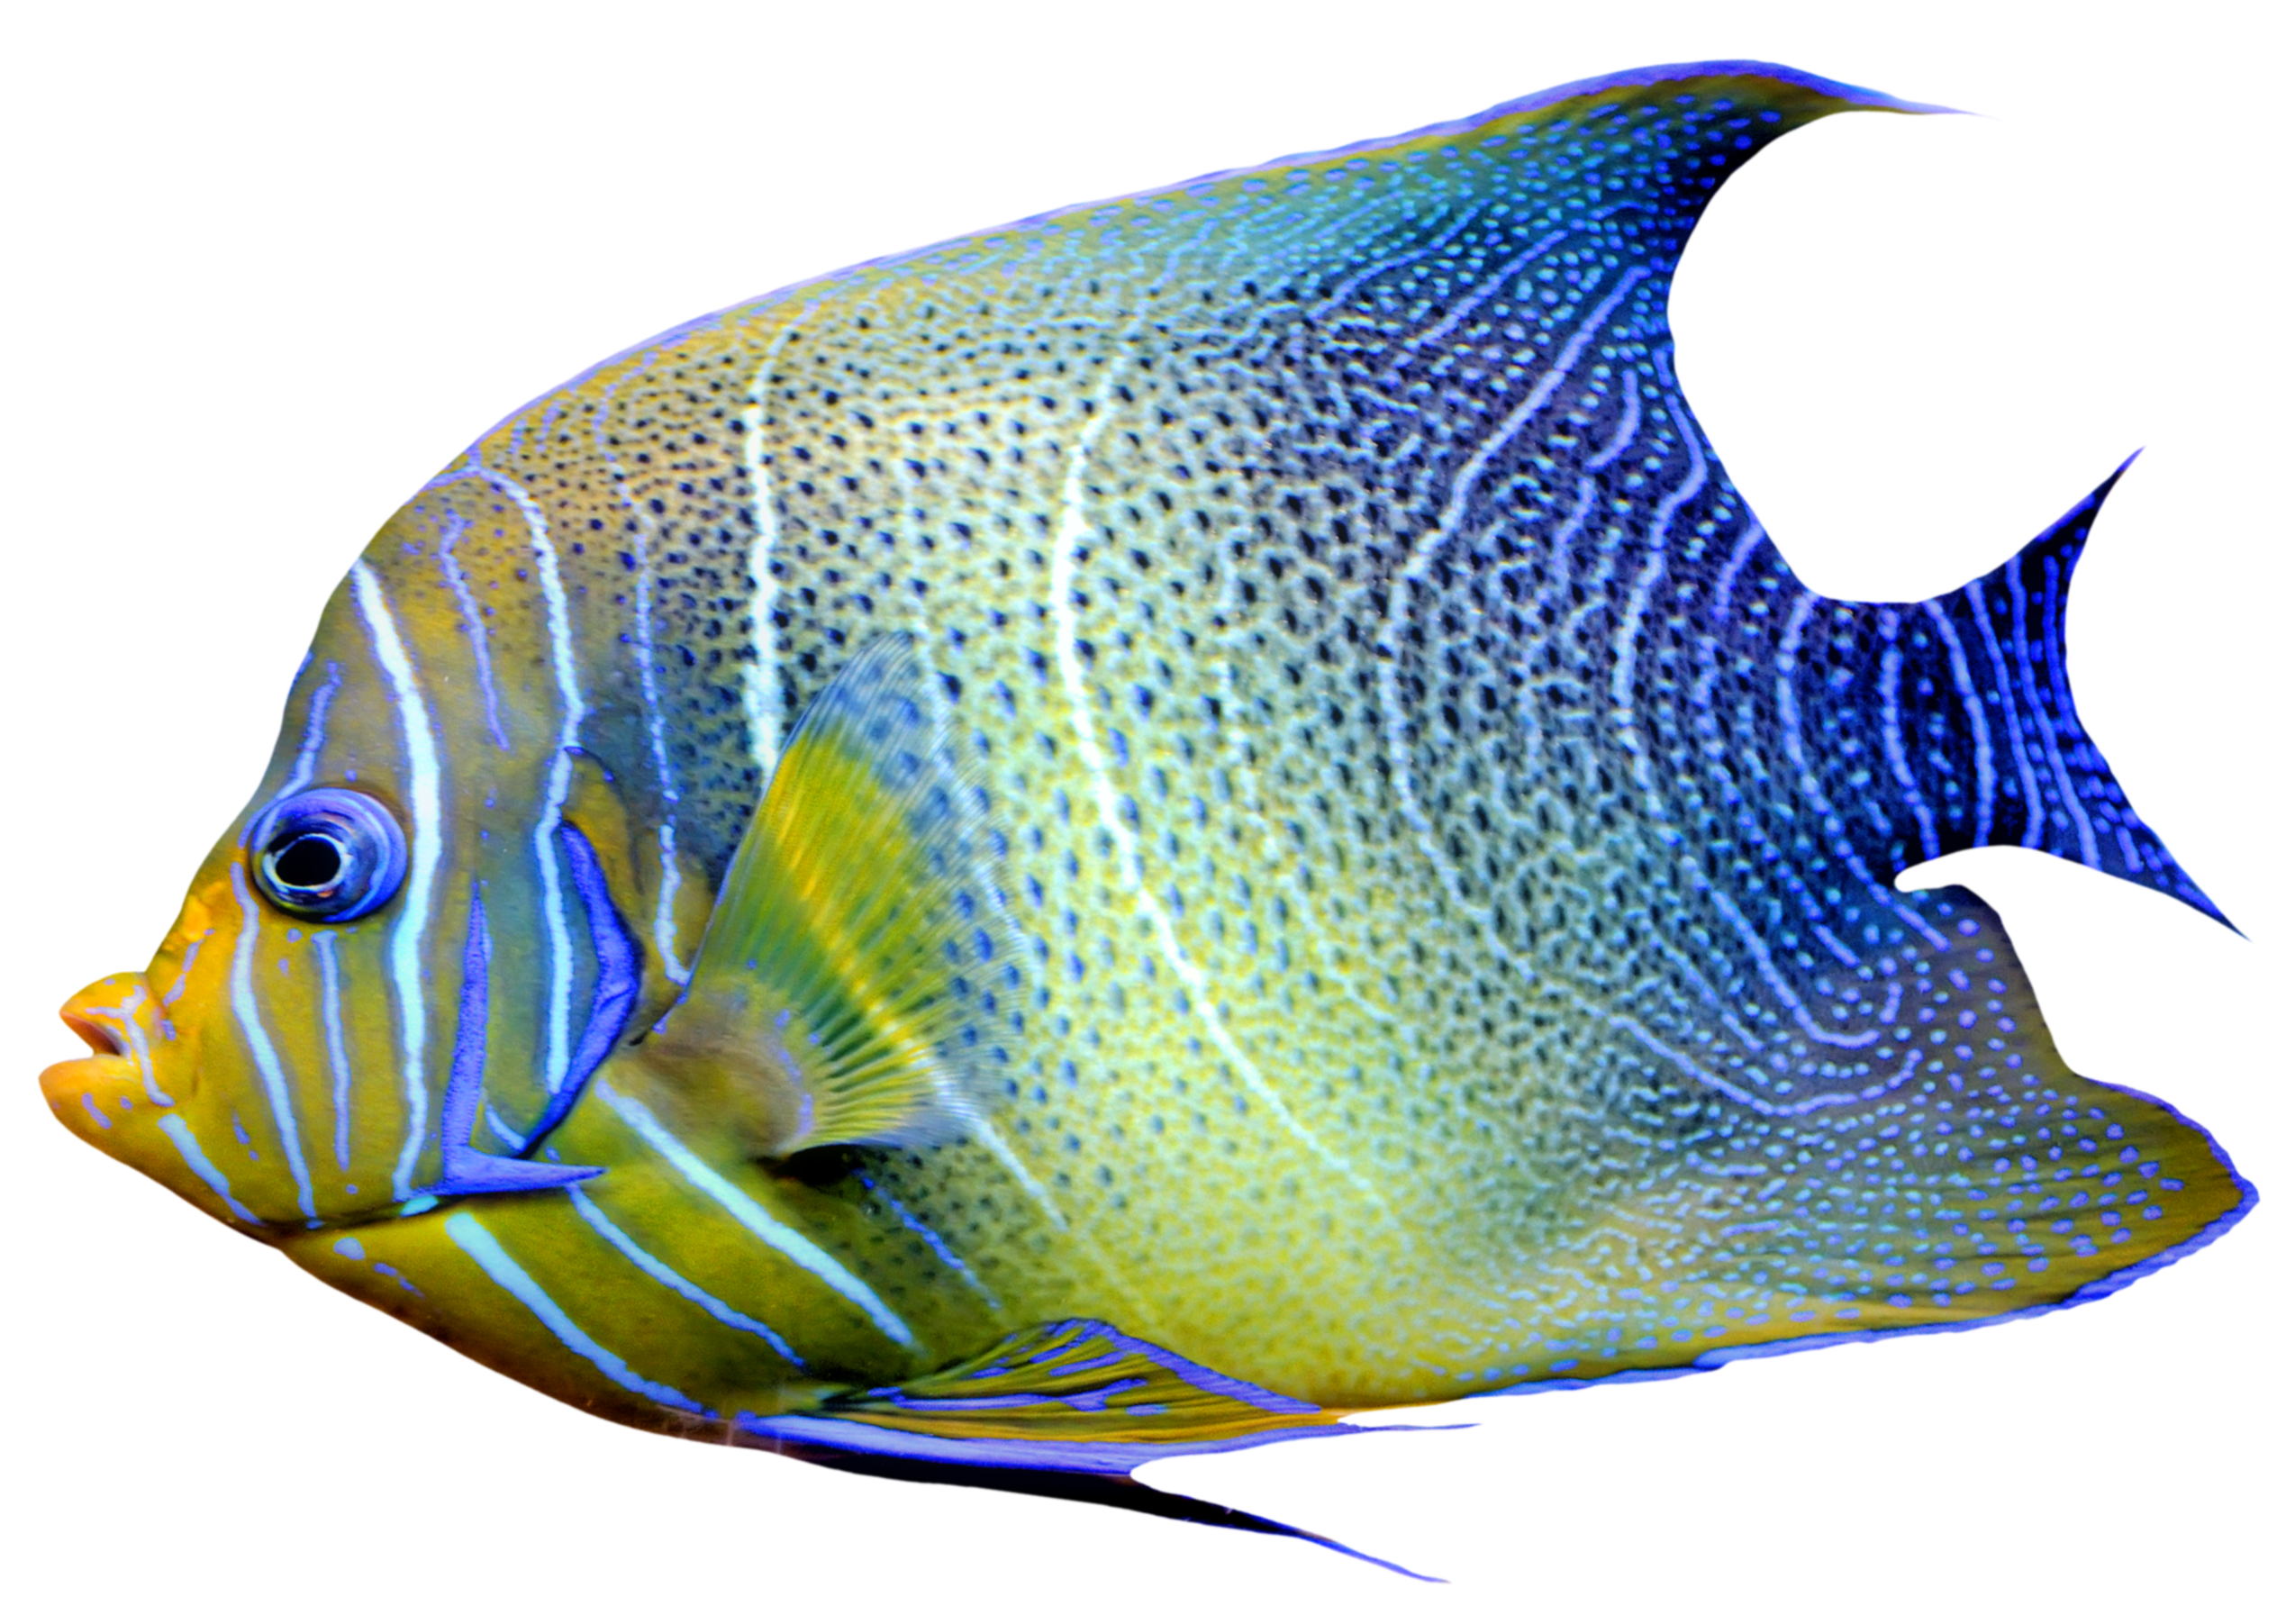 Fish Png - Realistic Fish Blue and Yellow PNG Clipart